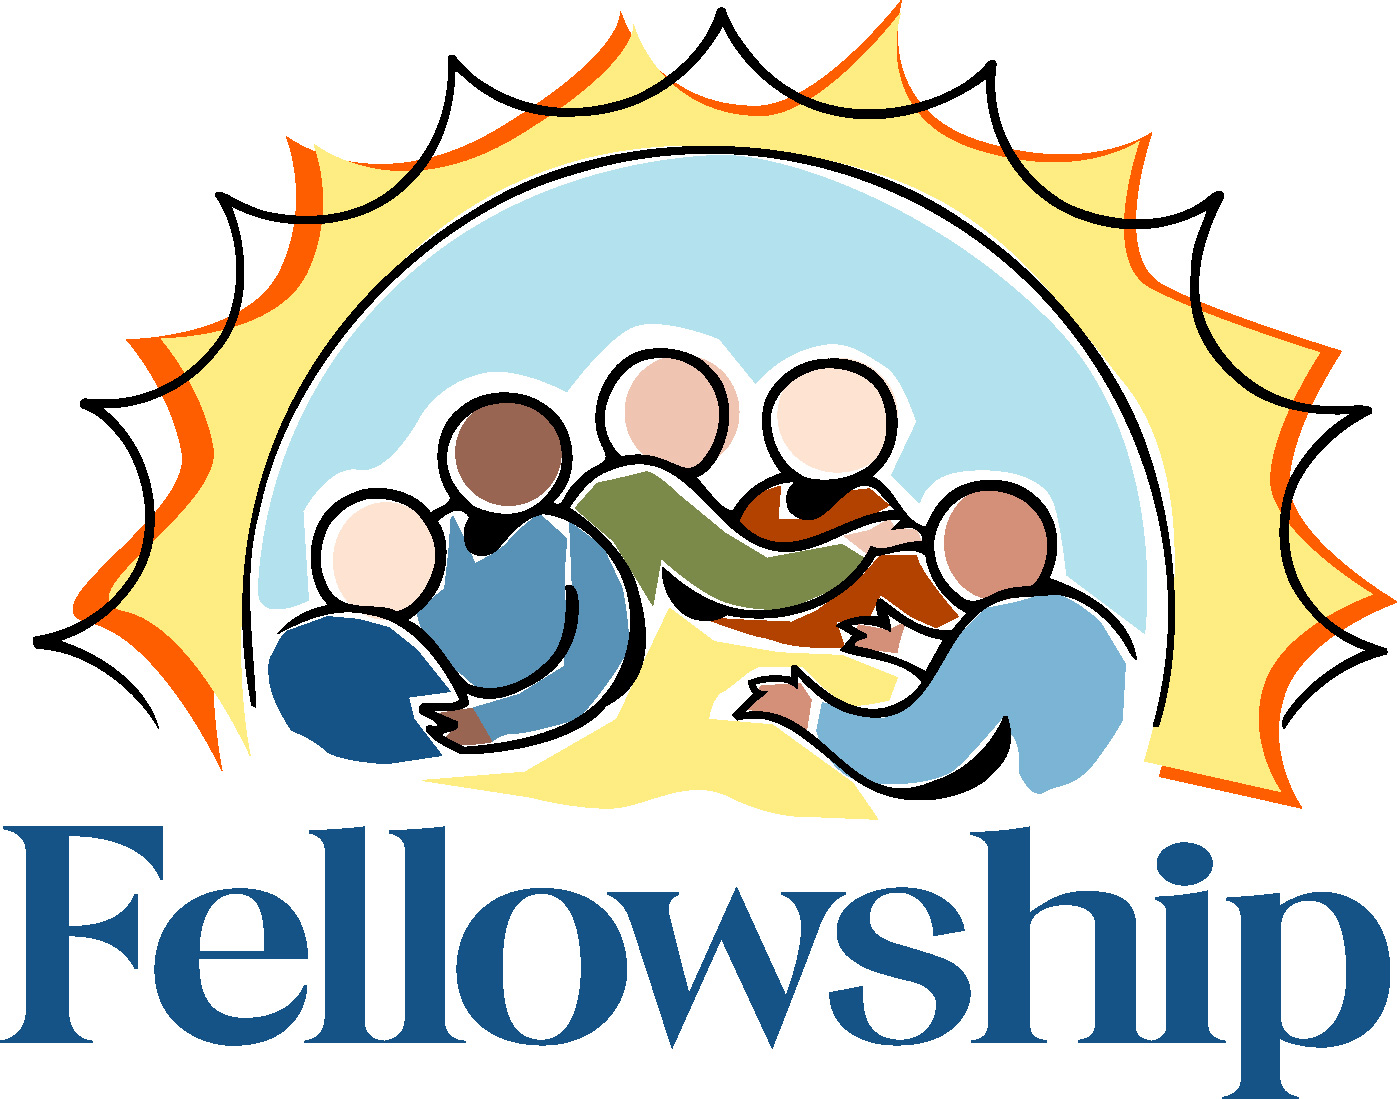 Church Fellowship Dinner Clip Art free image.